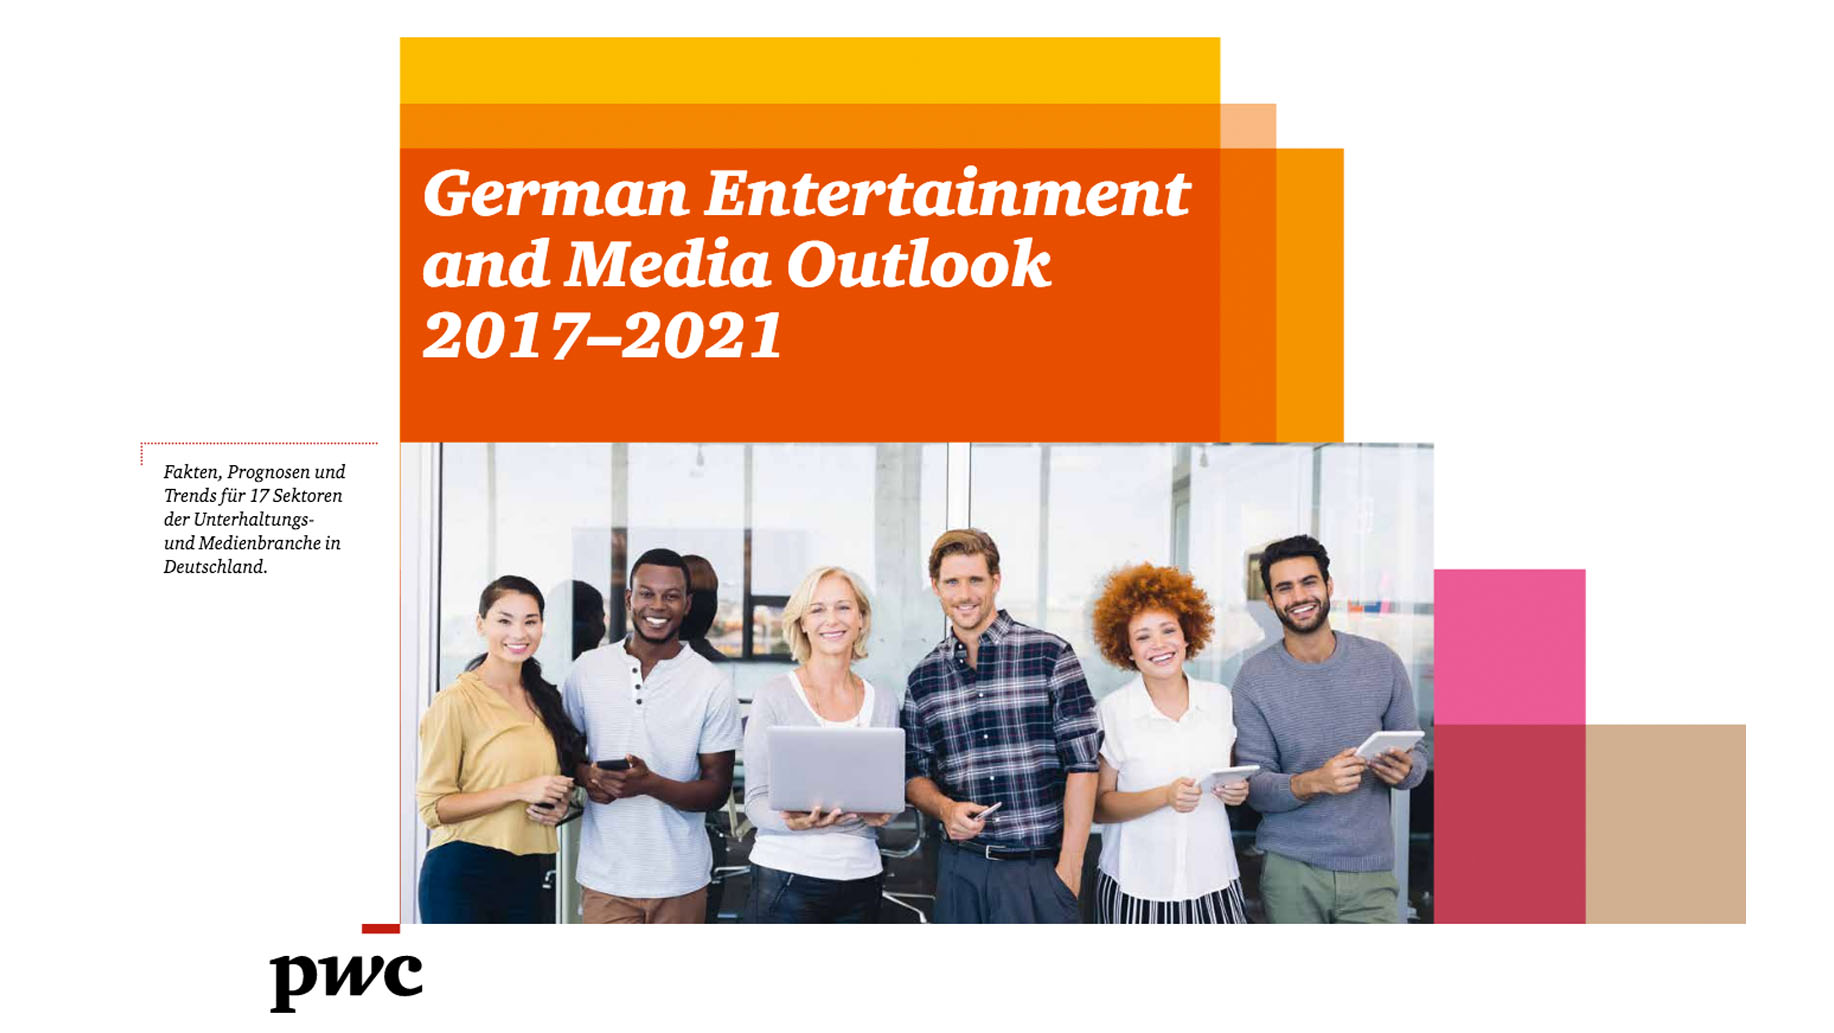 german-entertainment-media-outlook-1